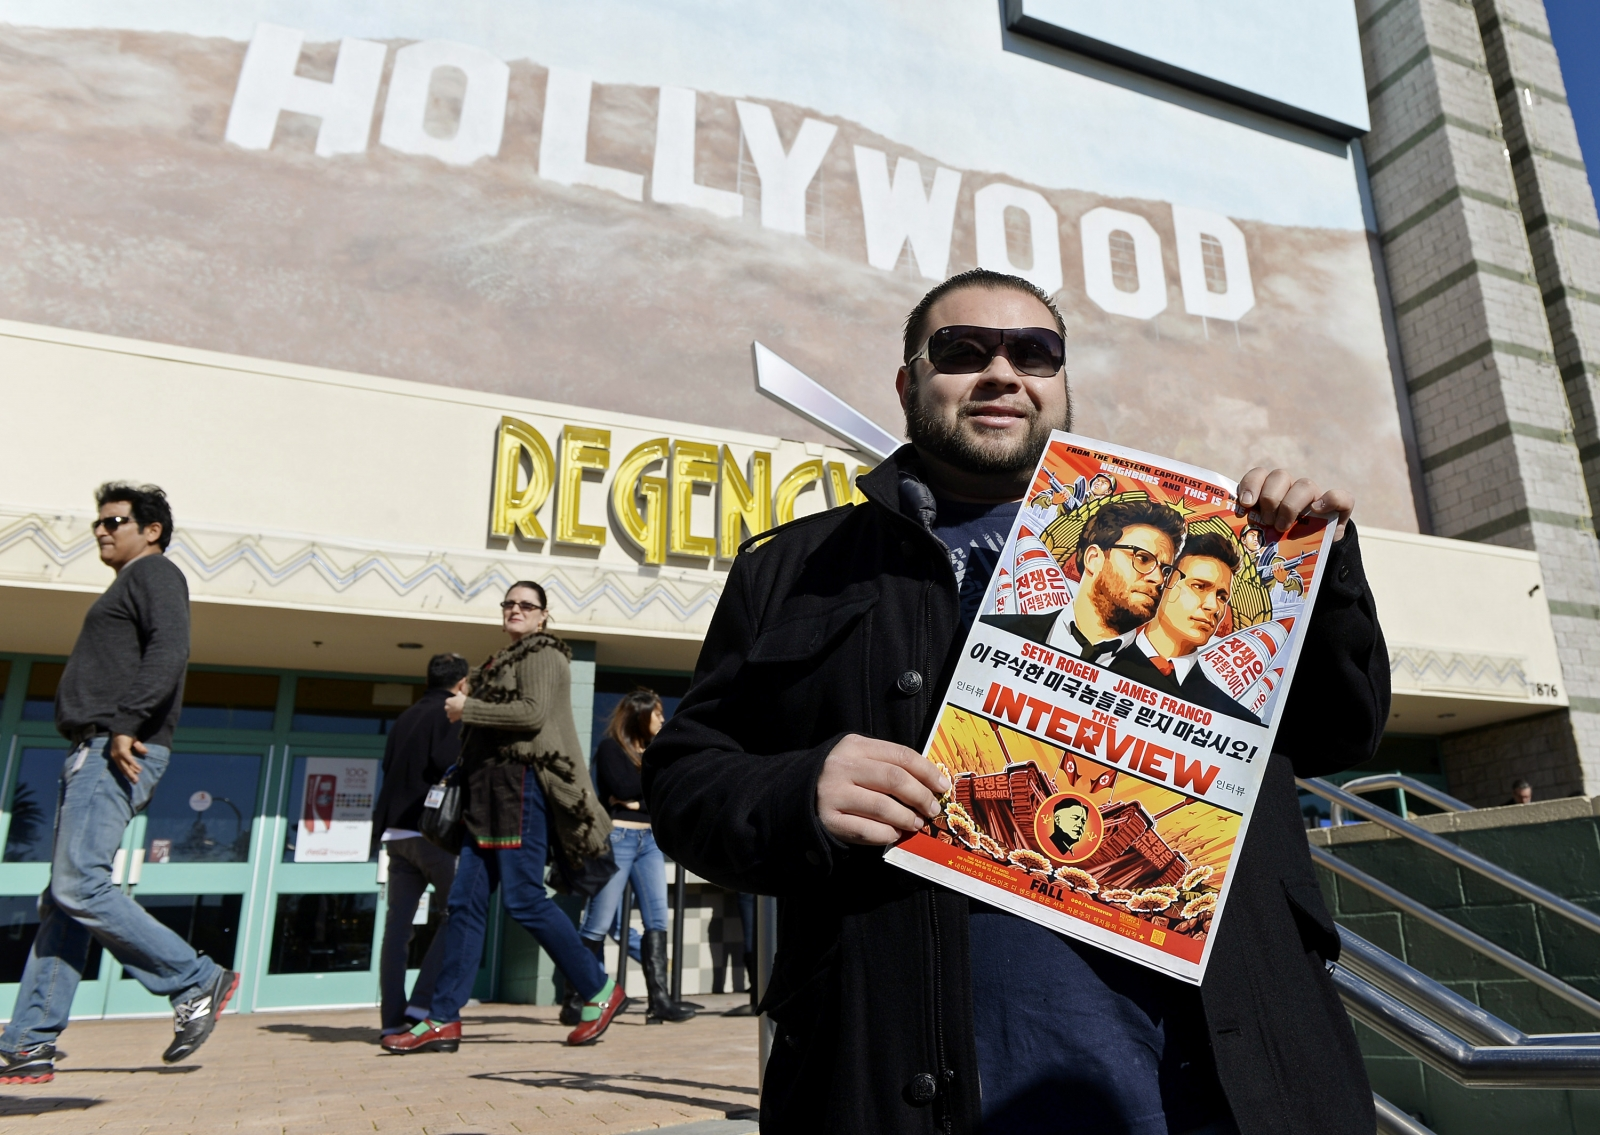 Christmas Day screening of The Interview in the Van Nuys section of Los Angeles, Hollywood